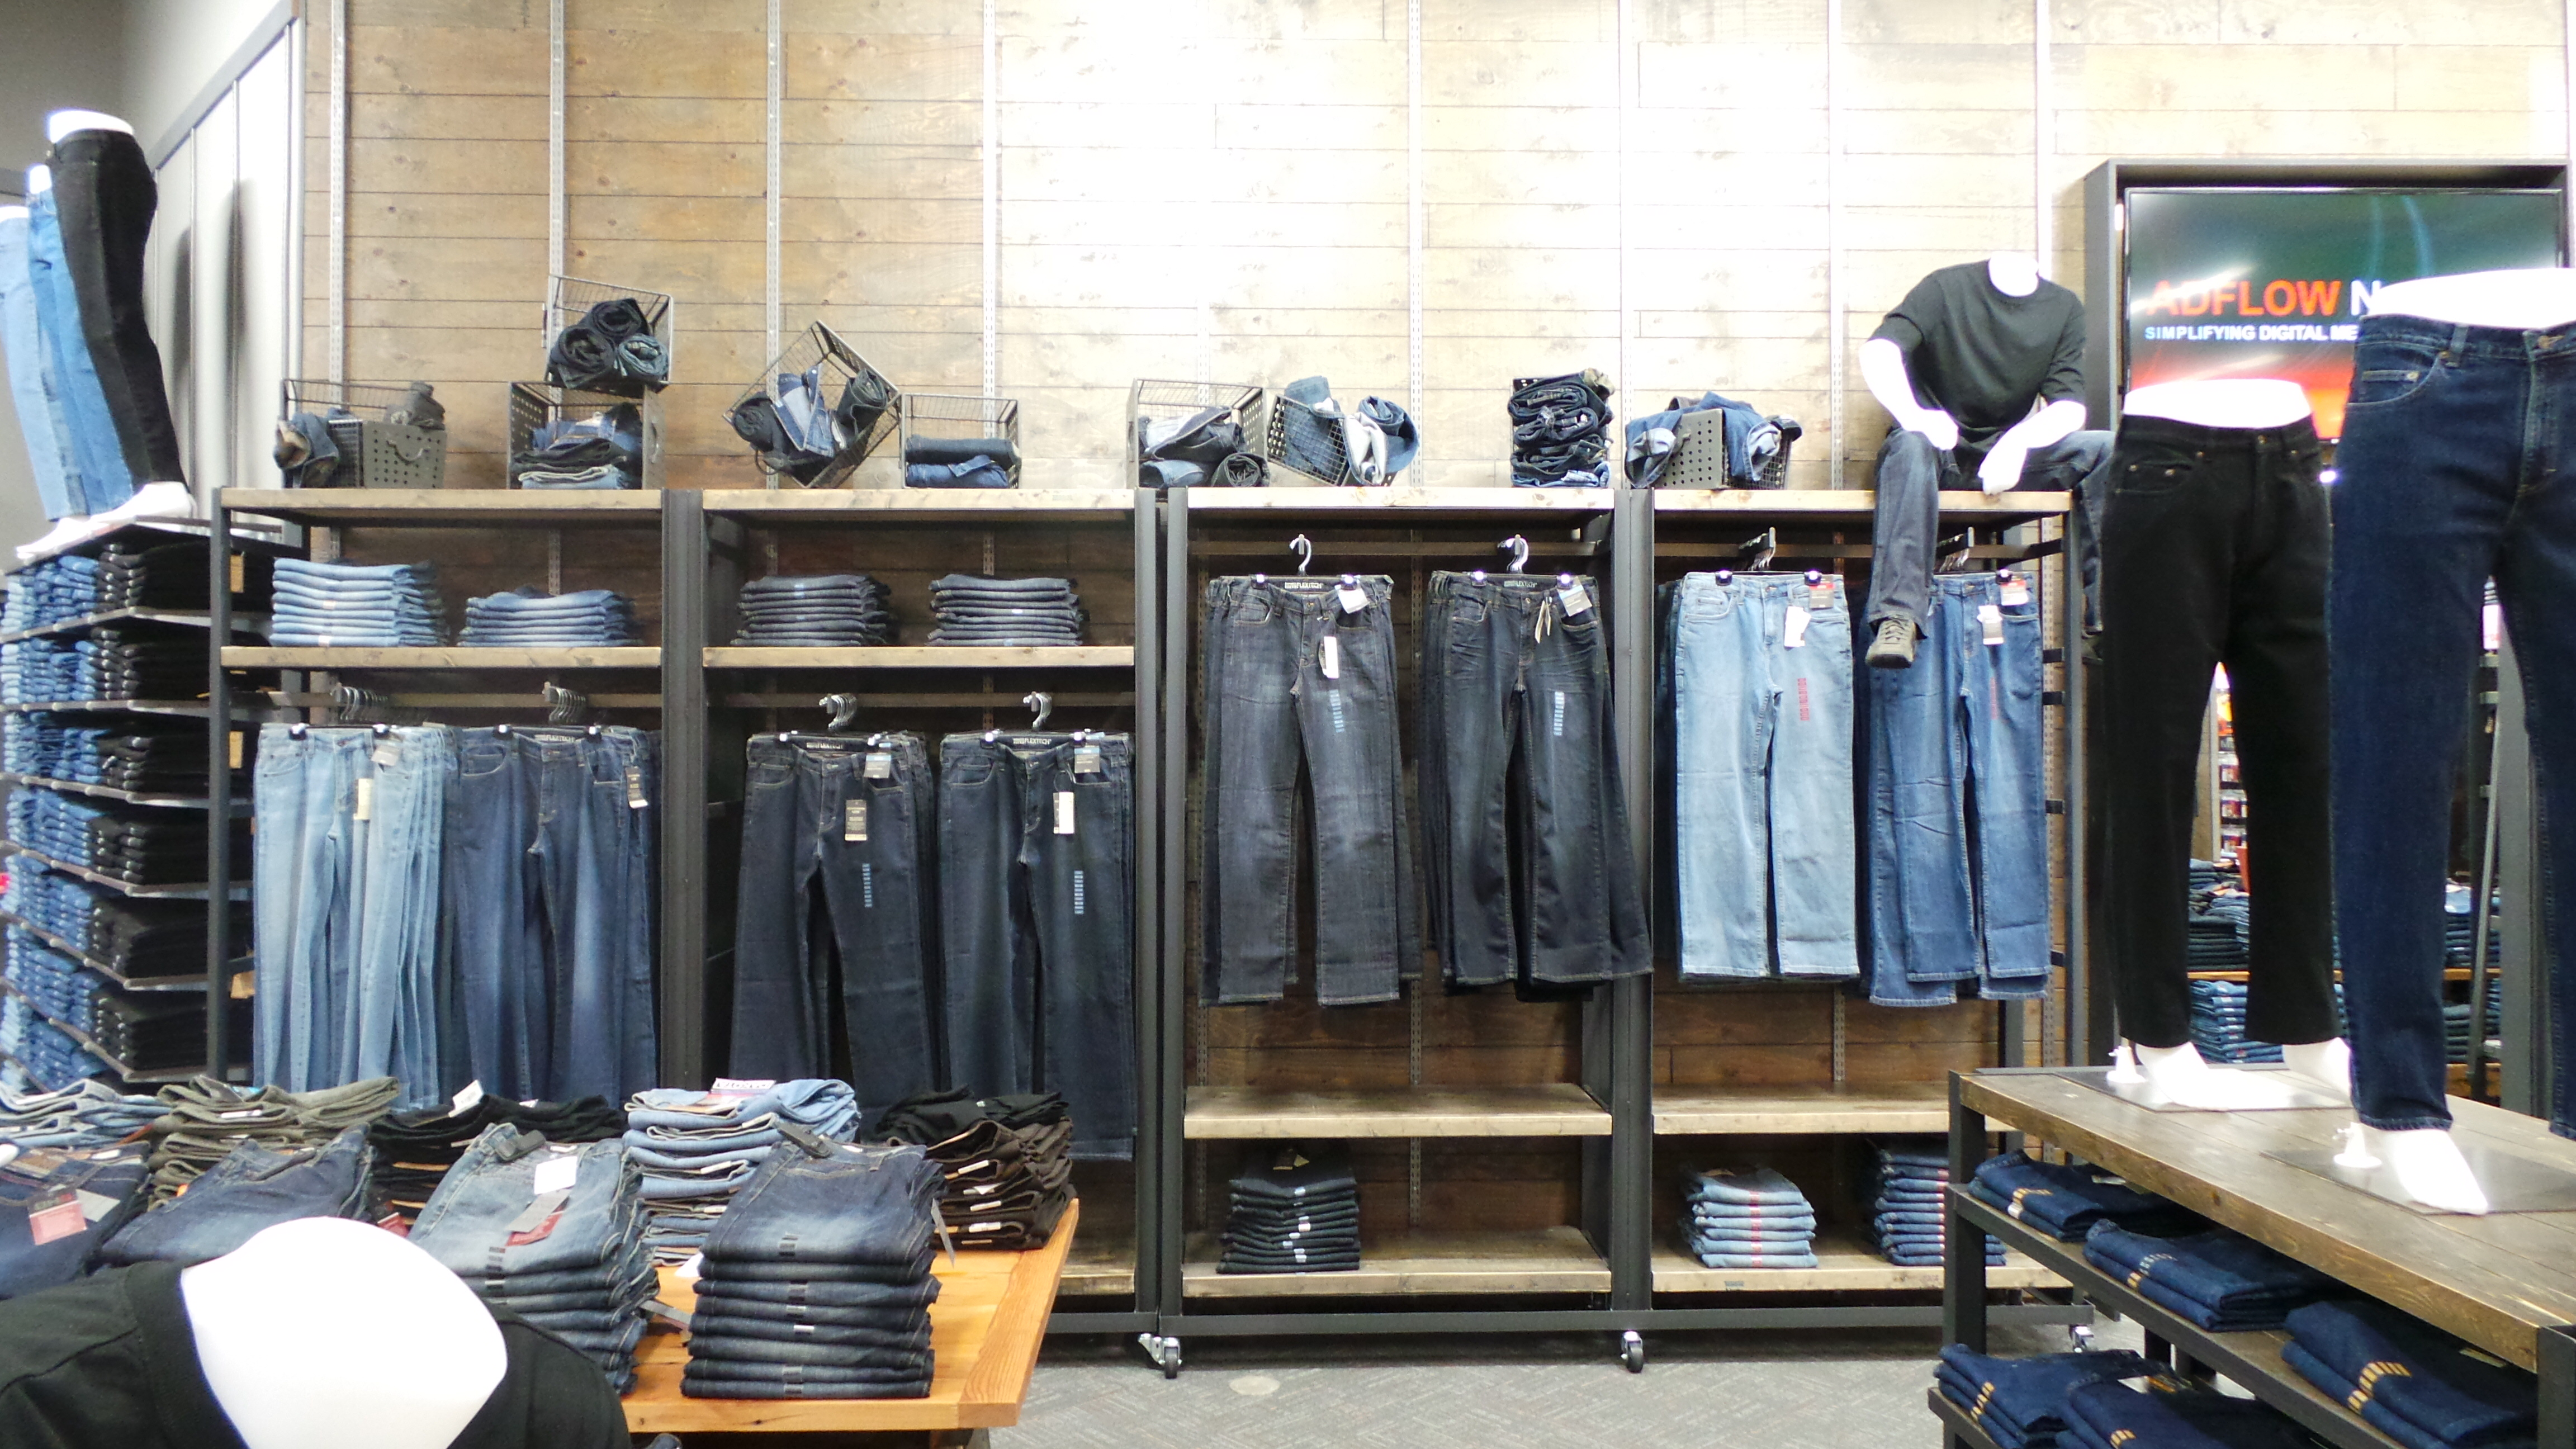 Mark's banks on jeans » strategy